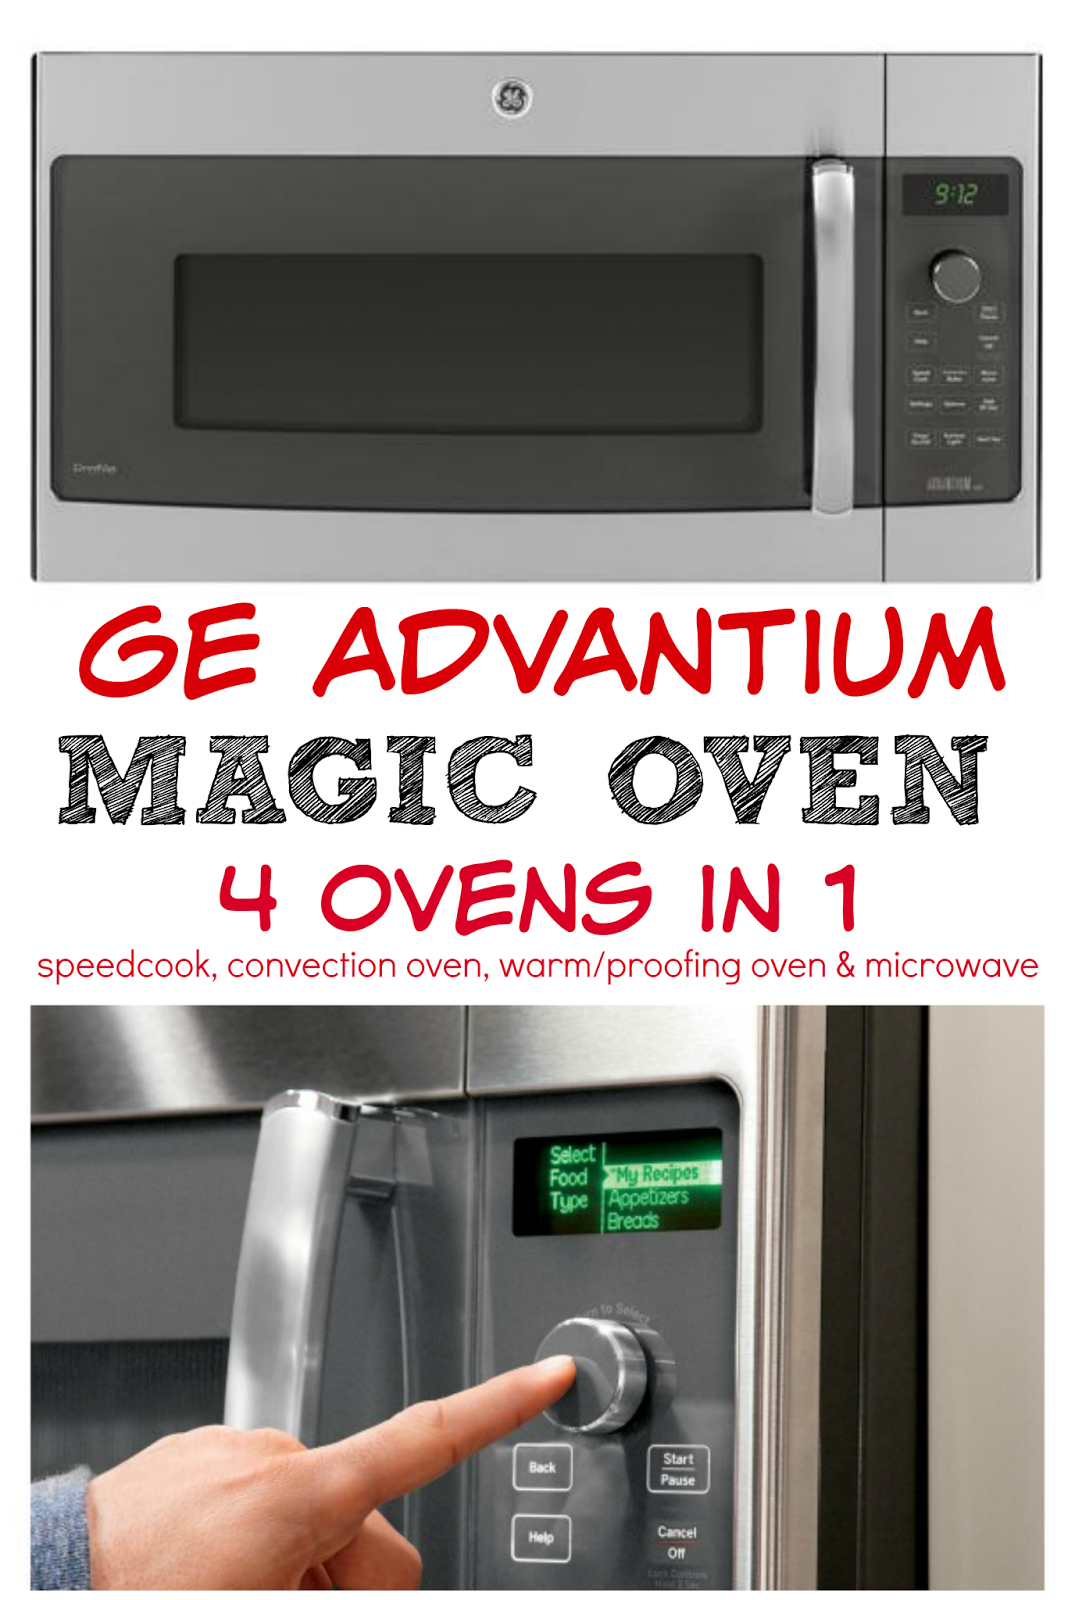 GE Advantium Oven - this oven is MAGIC! It is 4 ovens in 1 - speed cook, convection, warm/proofing and a microwave. The same oven bakes, broils and microwaves. It has TONS of preset recipes. You husband and kids will never starve with this oven!